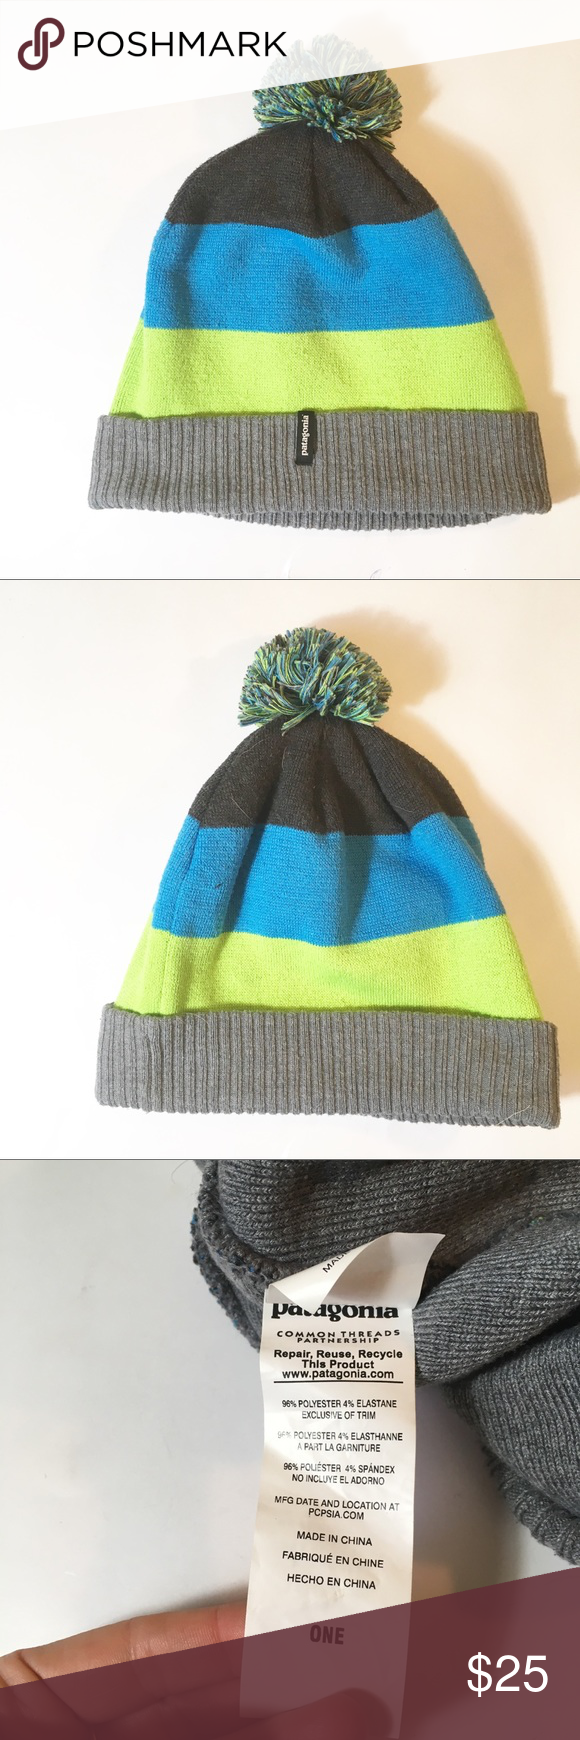 separation shoes official supplier online for sale Patagonia Pom Pom beanie stocking cap hat Excellent used condition ...